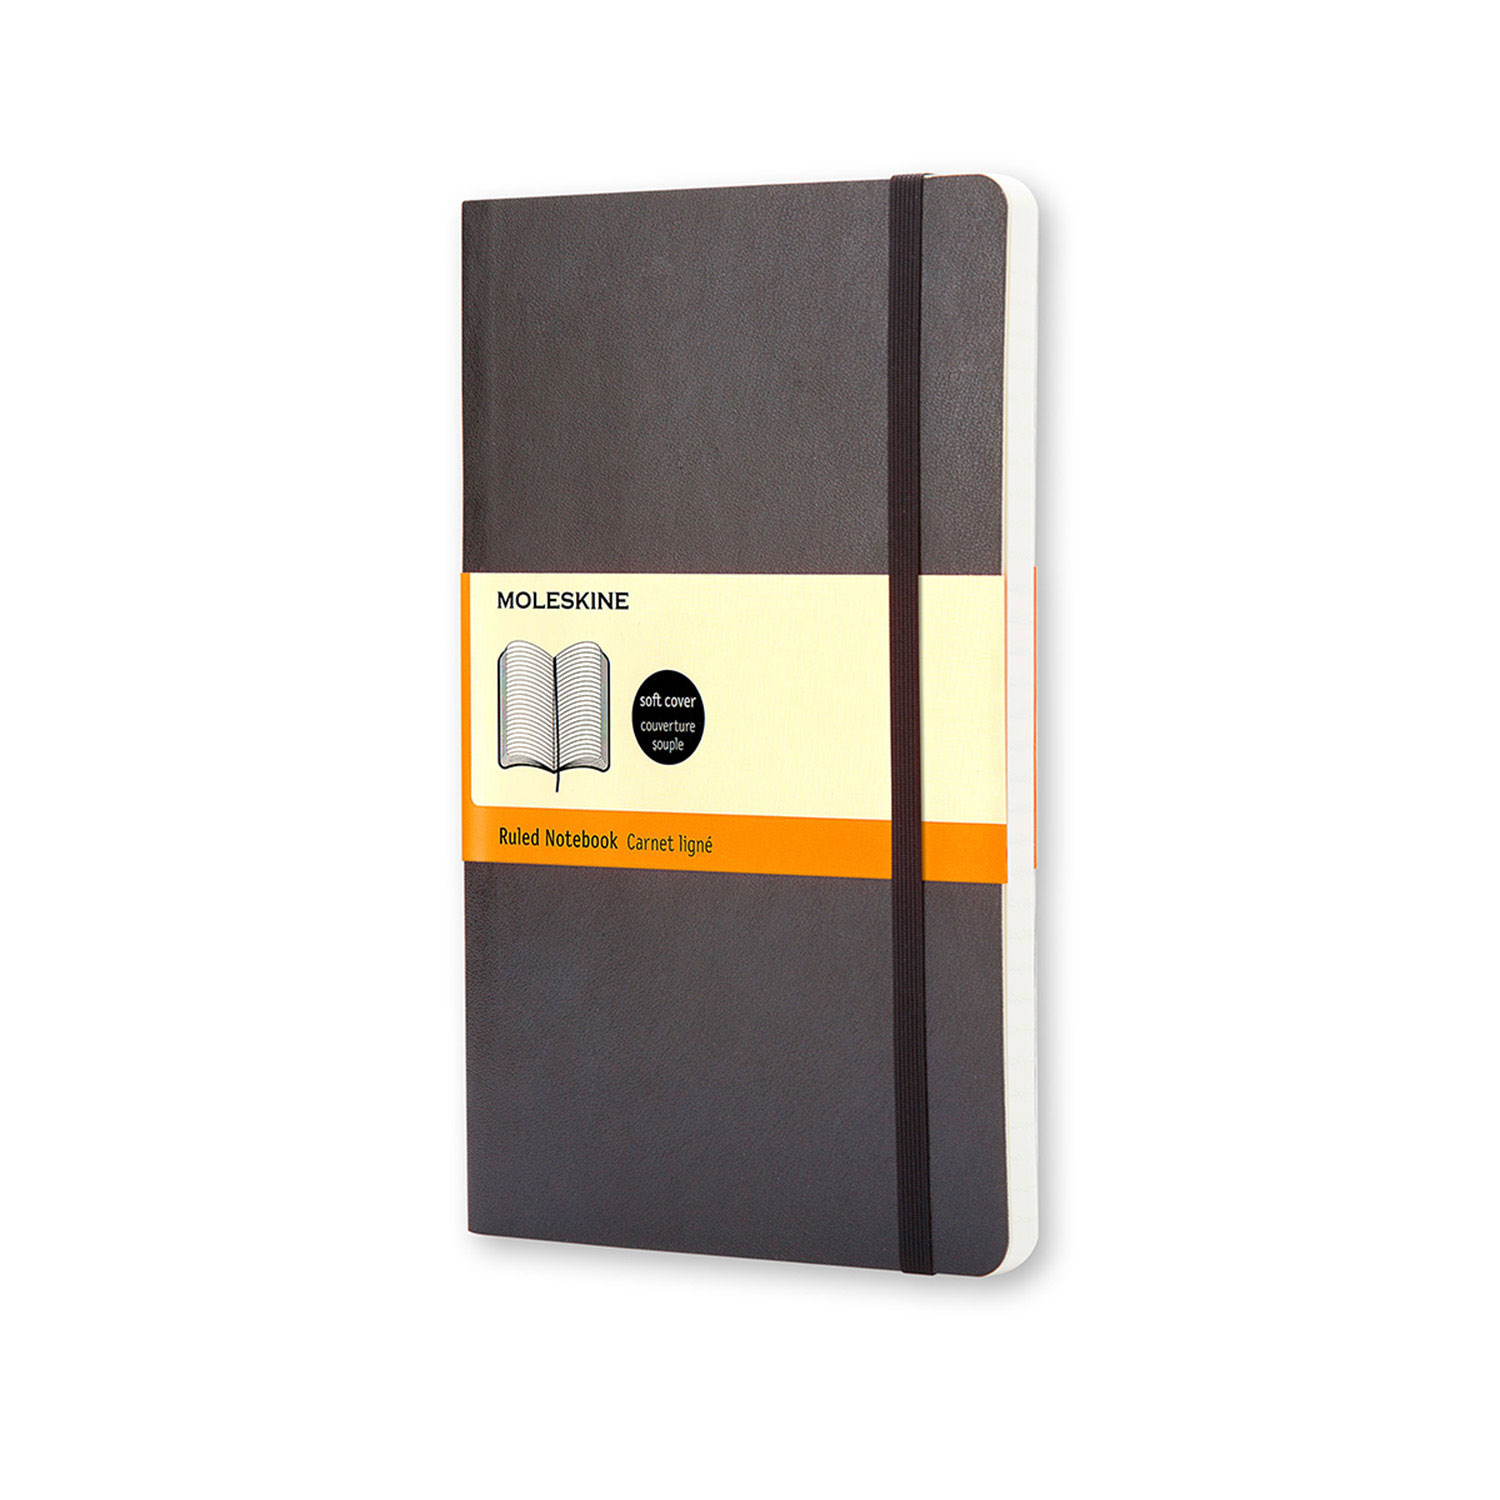 Branded Moleskine Notebooks - Classic Softcover